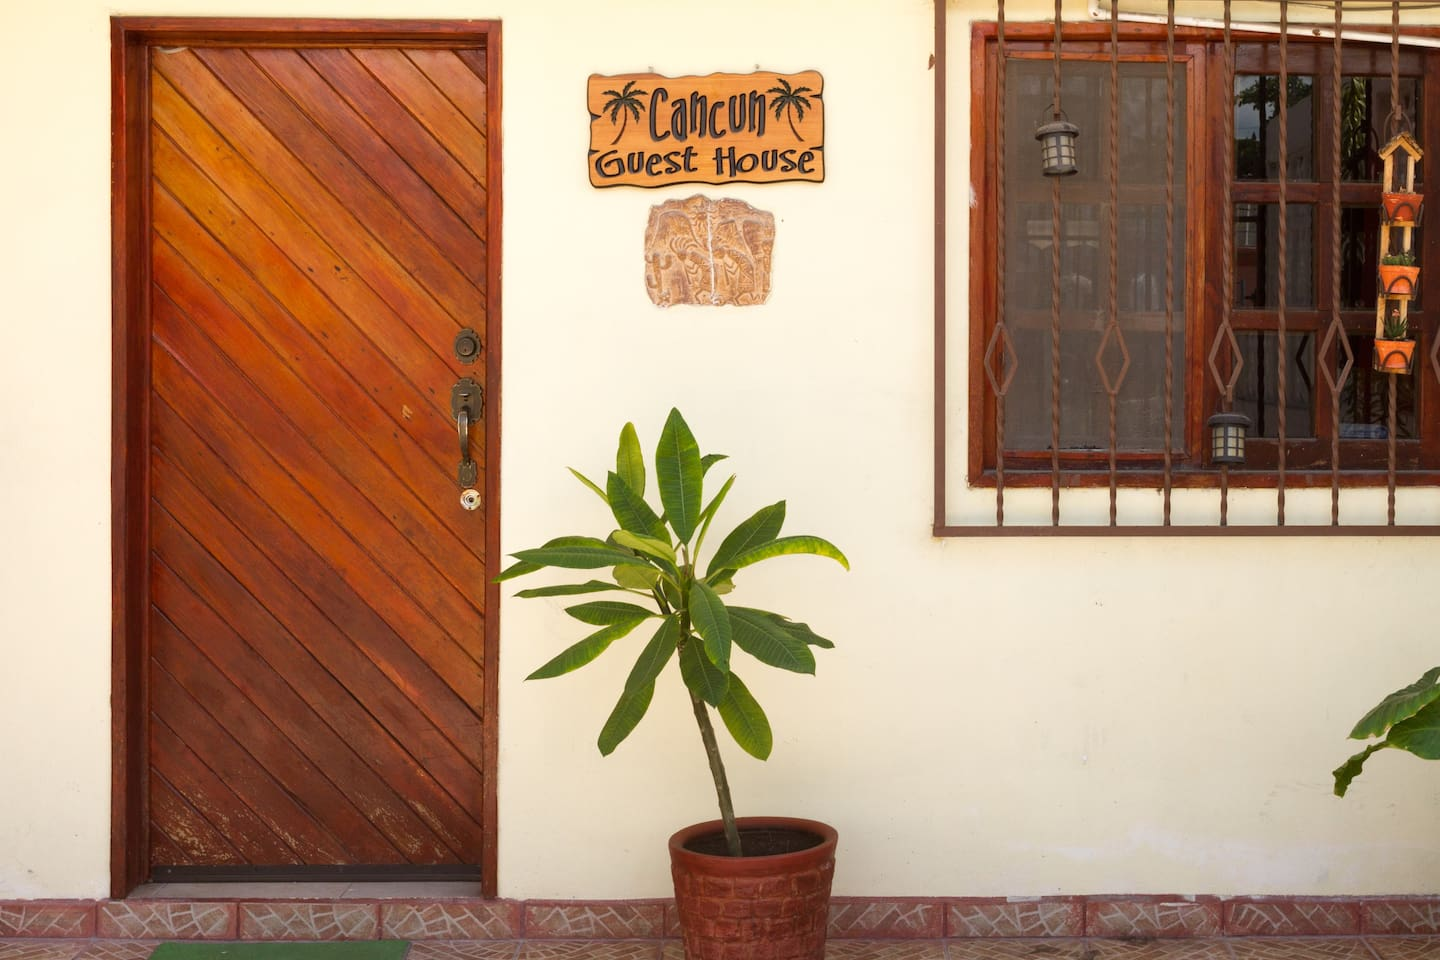 CANCUN GUEST HOUSE # 3